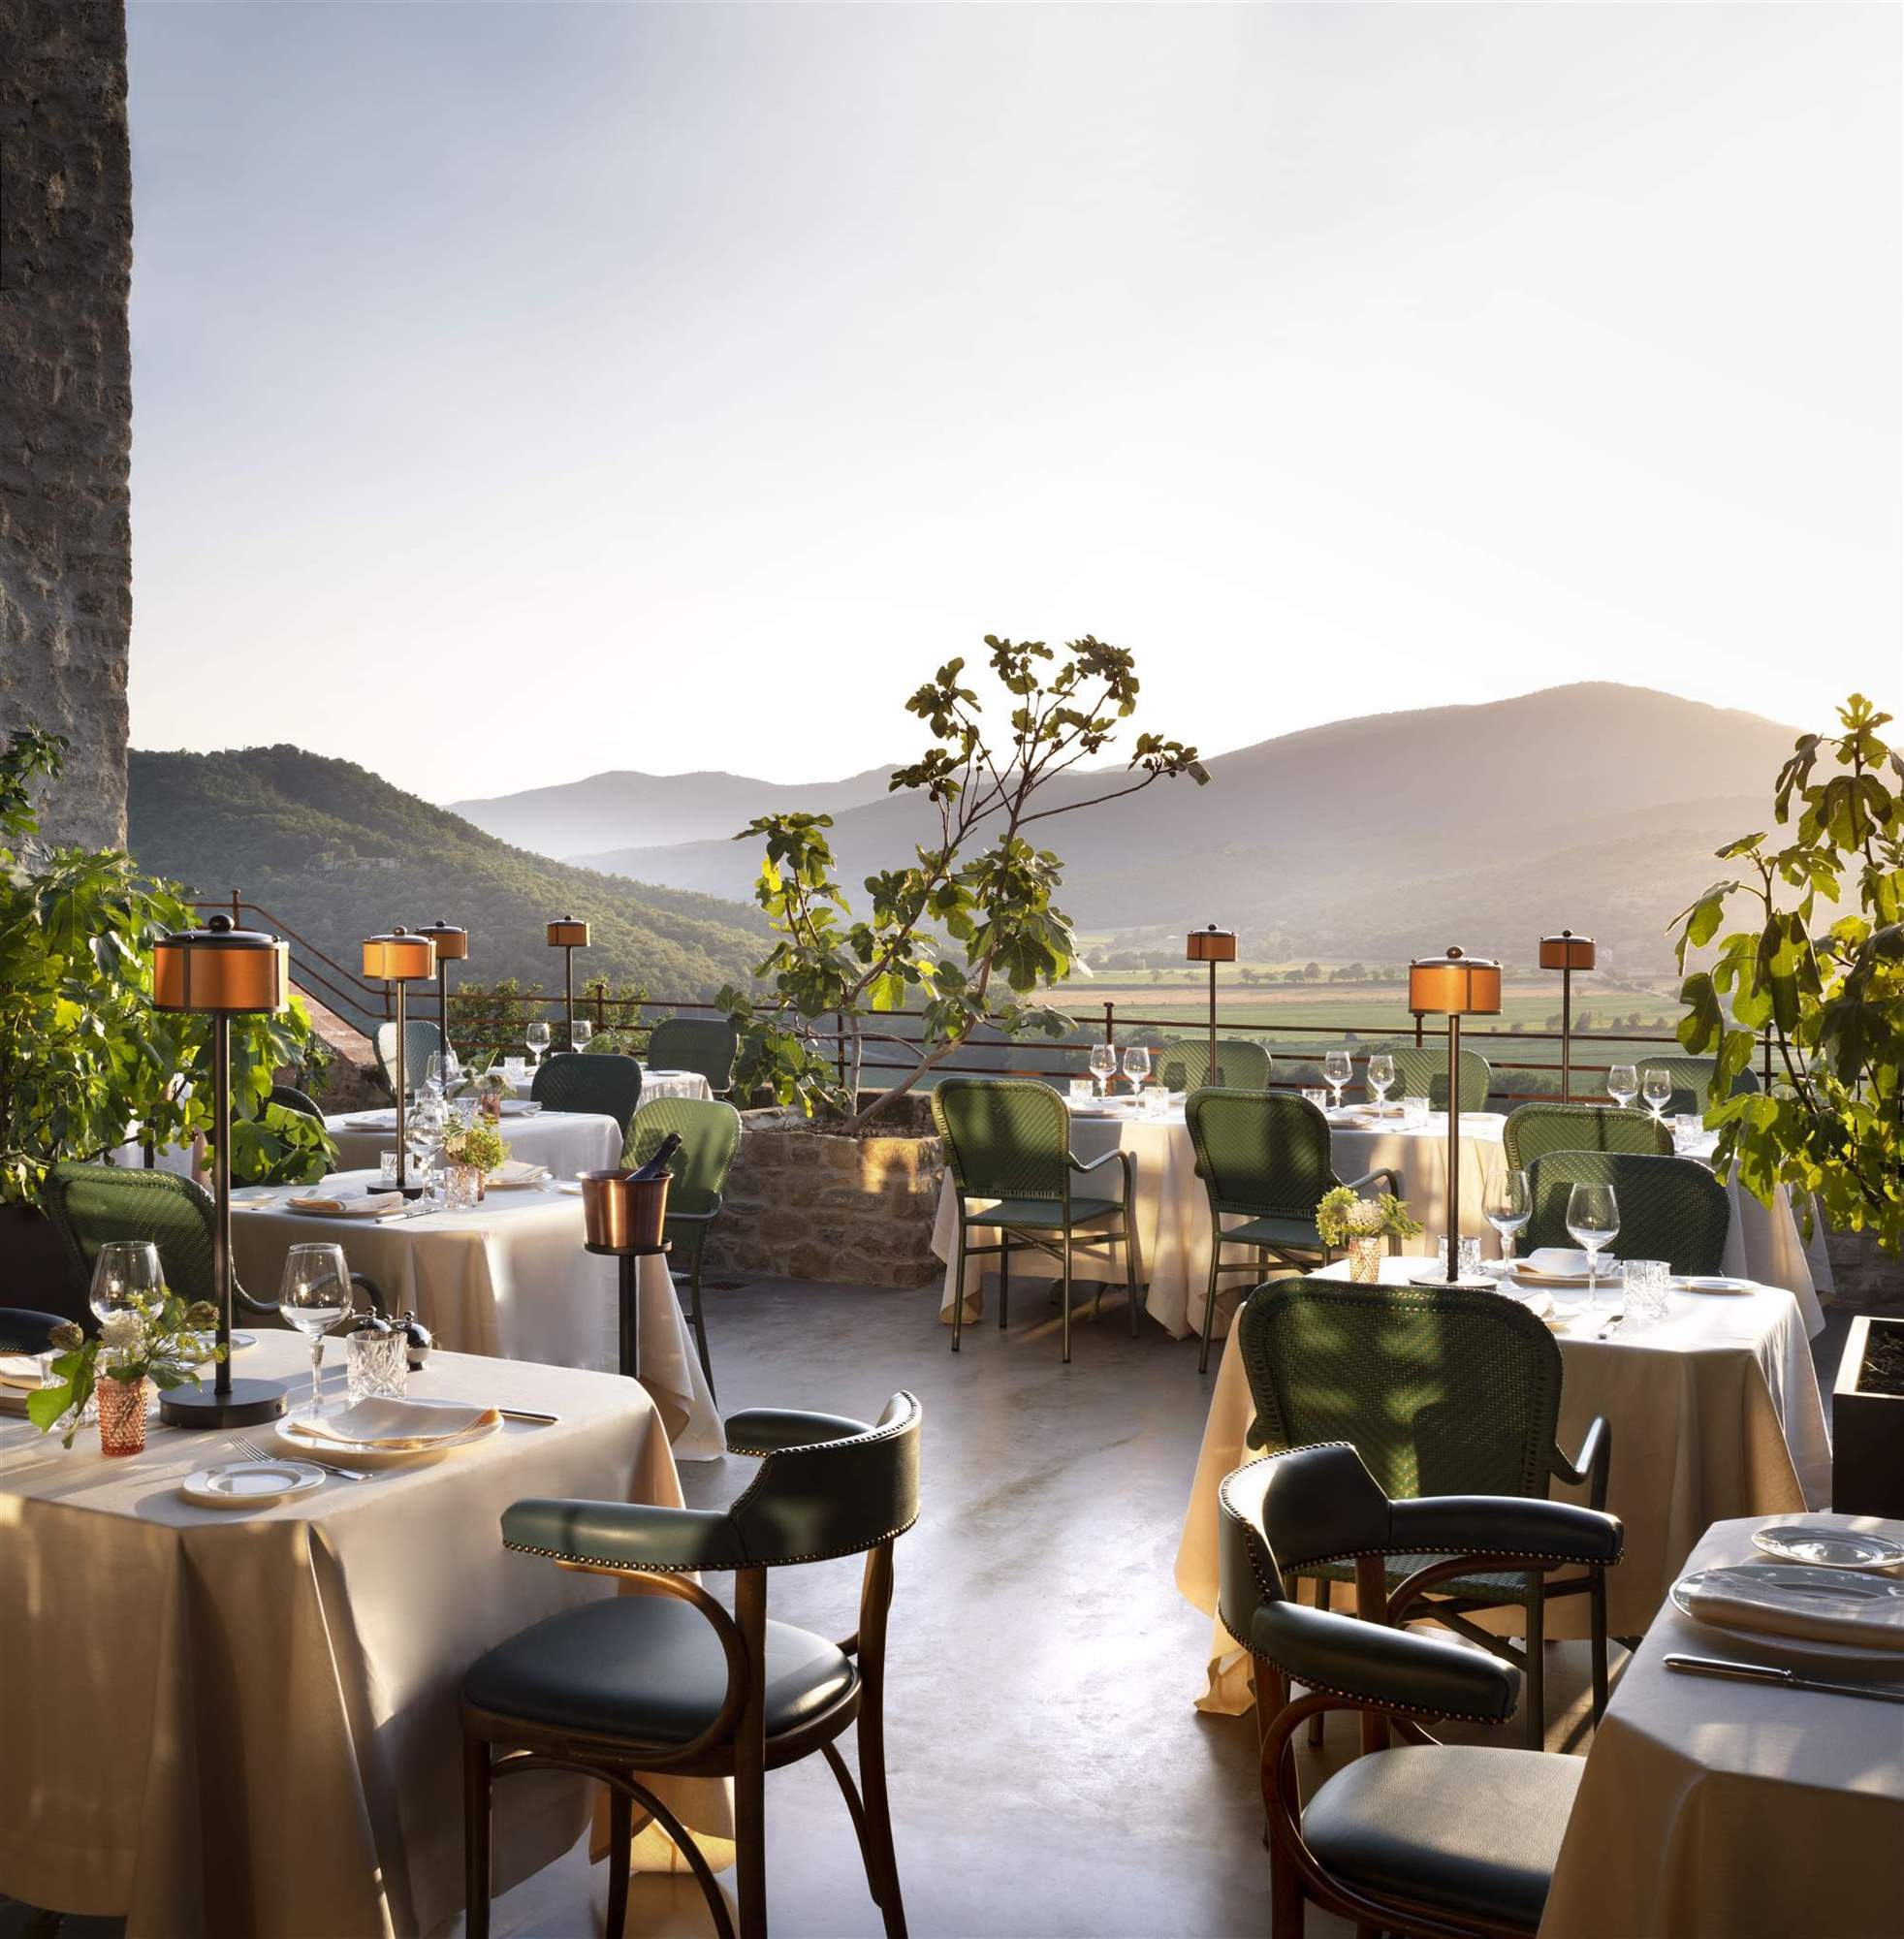 Ristorante Al Castello - The terrace - Hotel Castello di Reschio